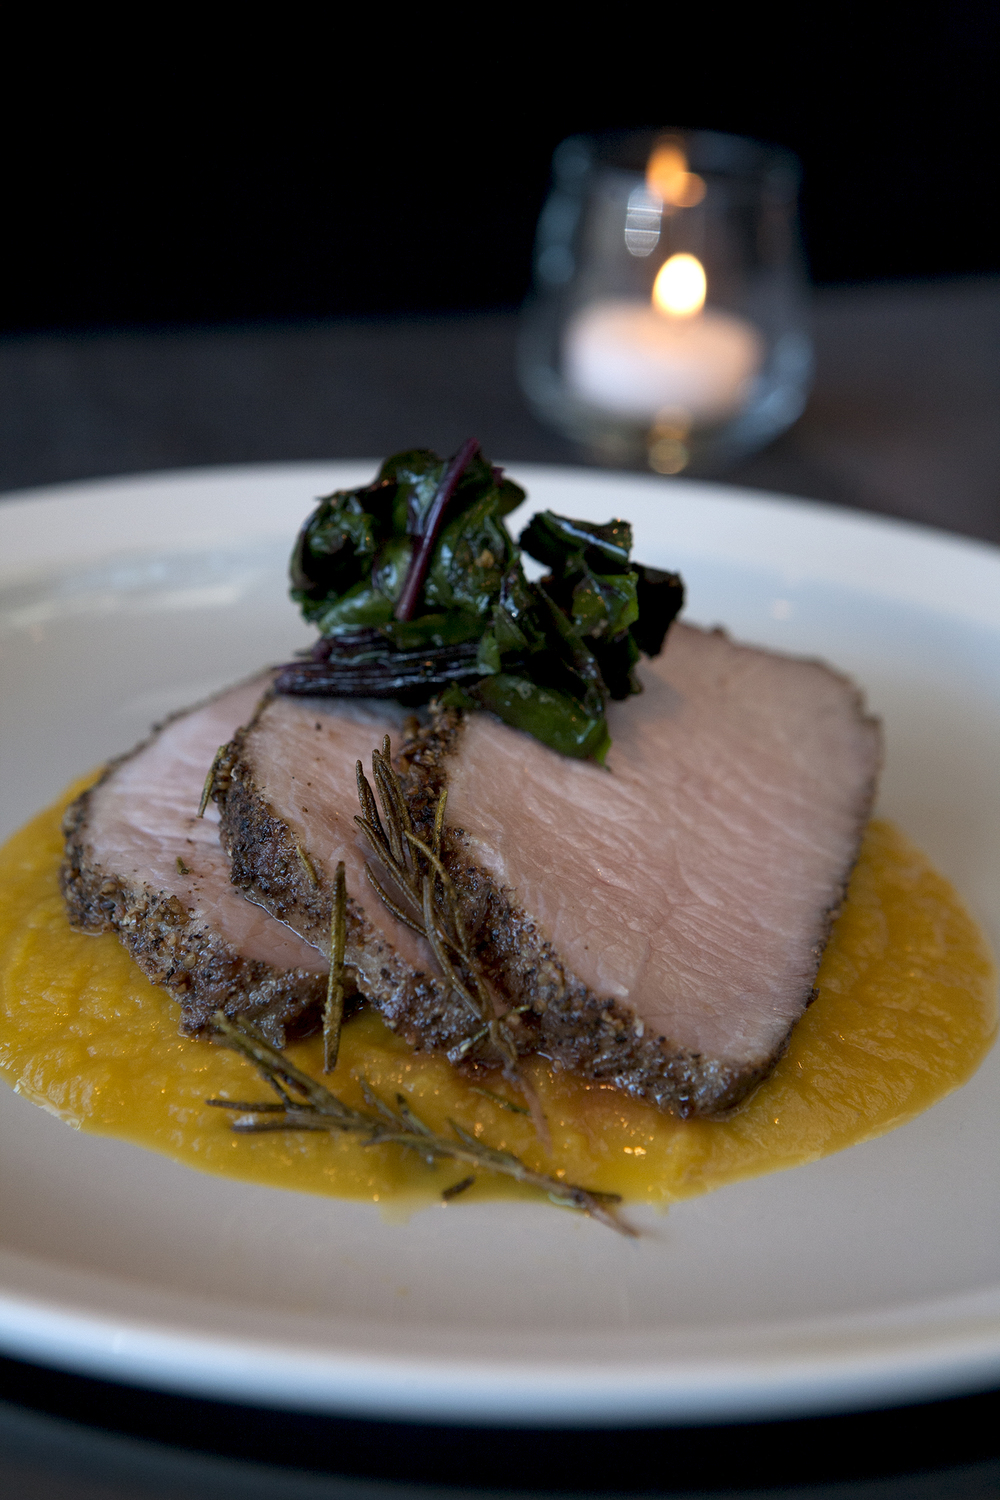 Roast pork loin with butternut squash puree